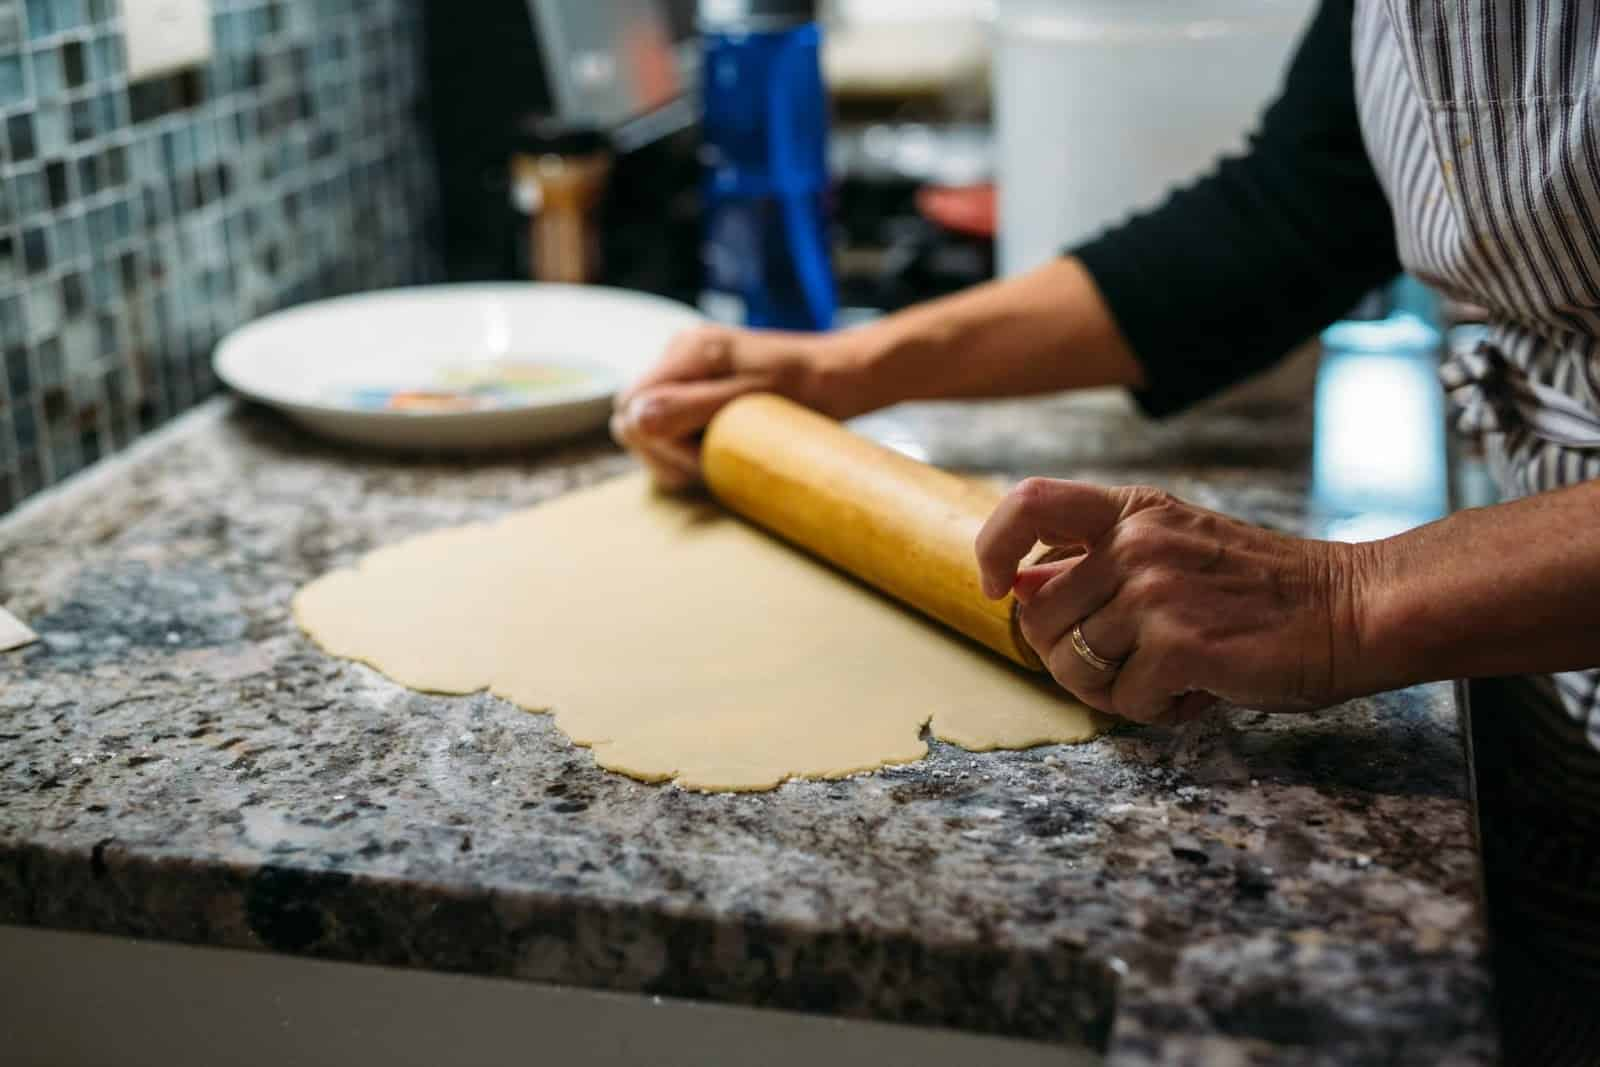 Immigrant woman rolling dough in her kitchen showcasing the impact of home cooking gig economy for immigrants